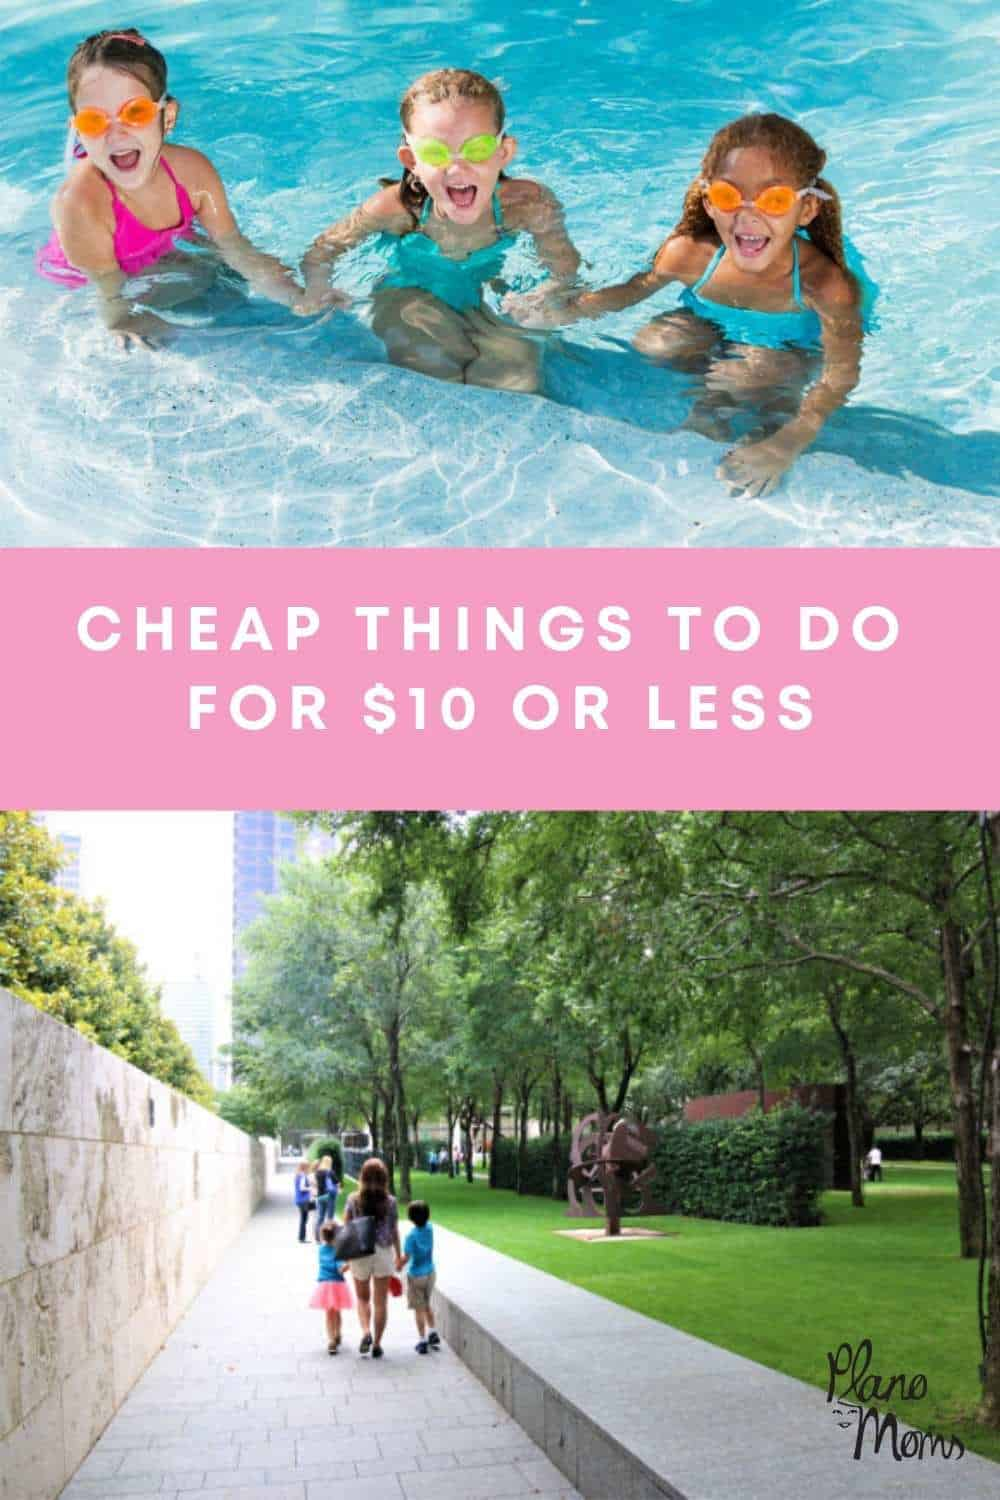 Cheap things to do around Plano